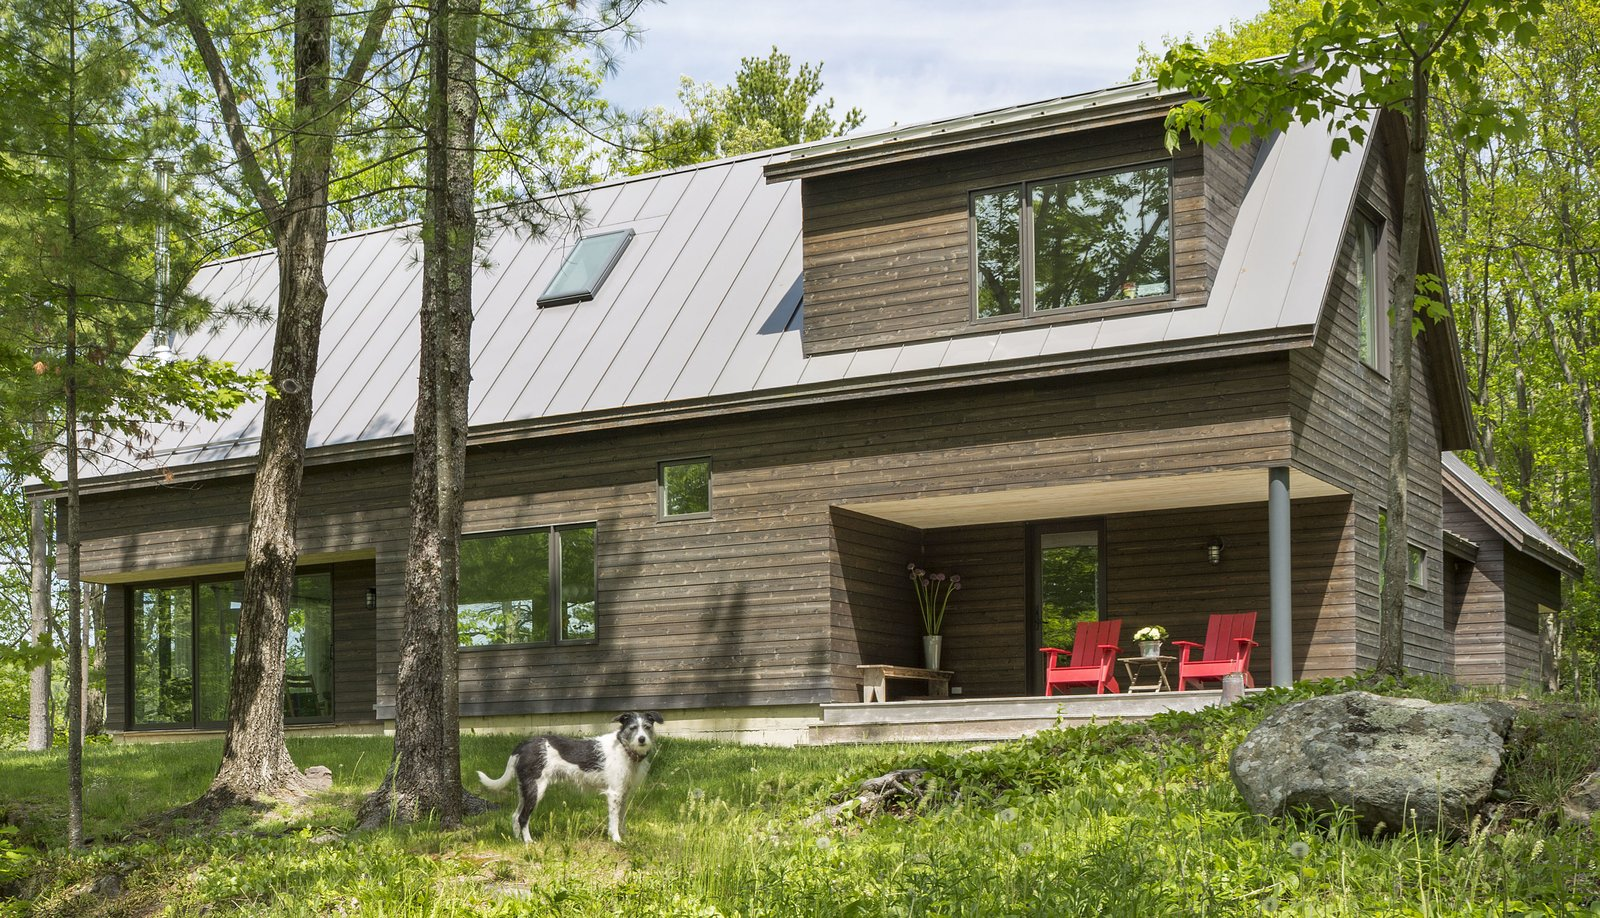 Outdoor, Grass, and Trees Architect Elizabeth Herrmann's Knoll House project, Best Transitional category winner of 2017 Marvin Architects Challenge.    Knoll House